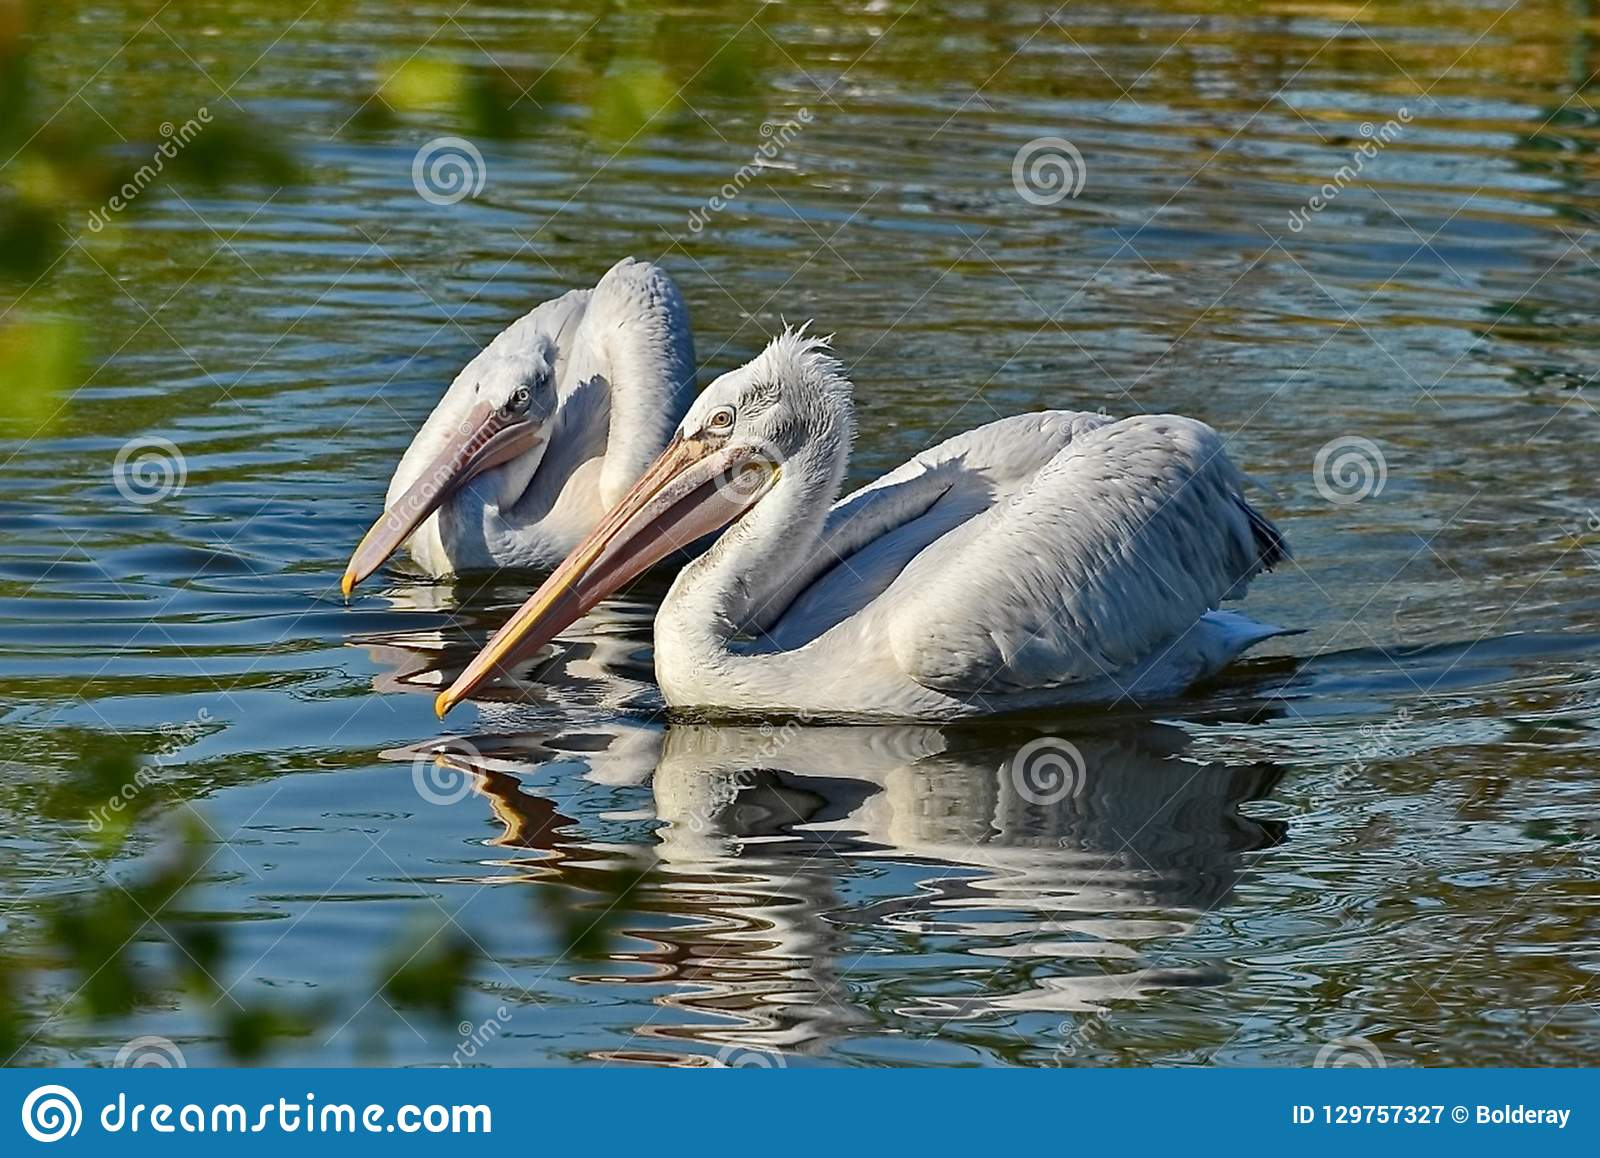 American white pelican Pelecanus erythrorhynchos. It breeds in interior North America, moving south and to the coasts